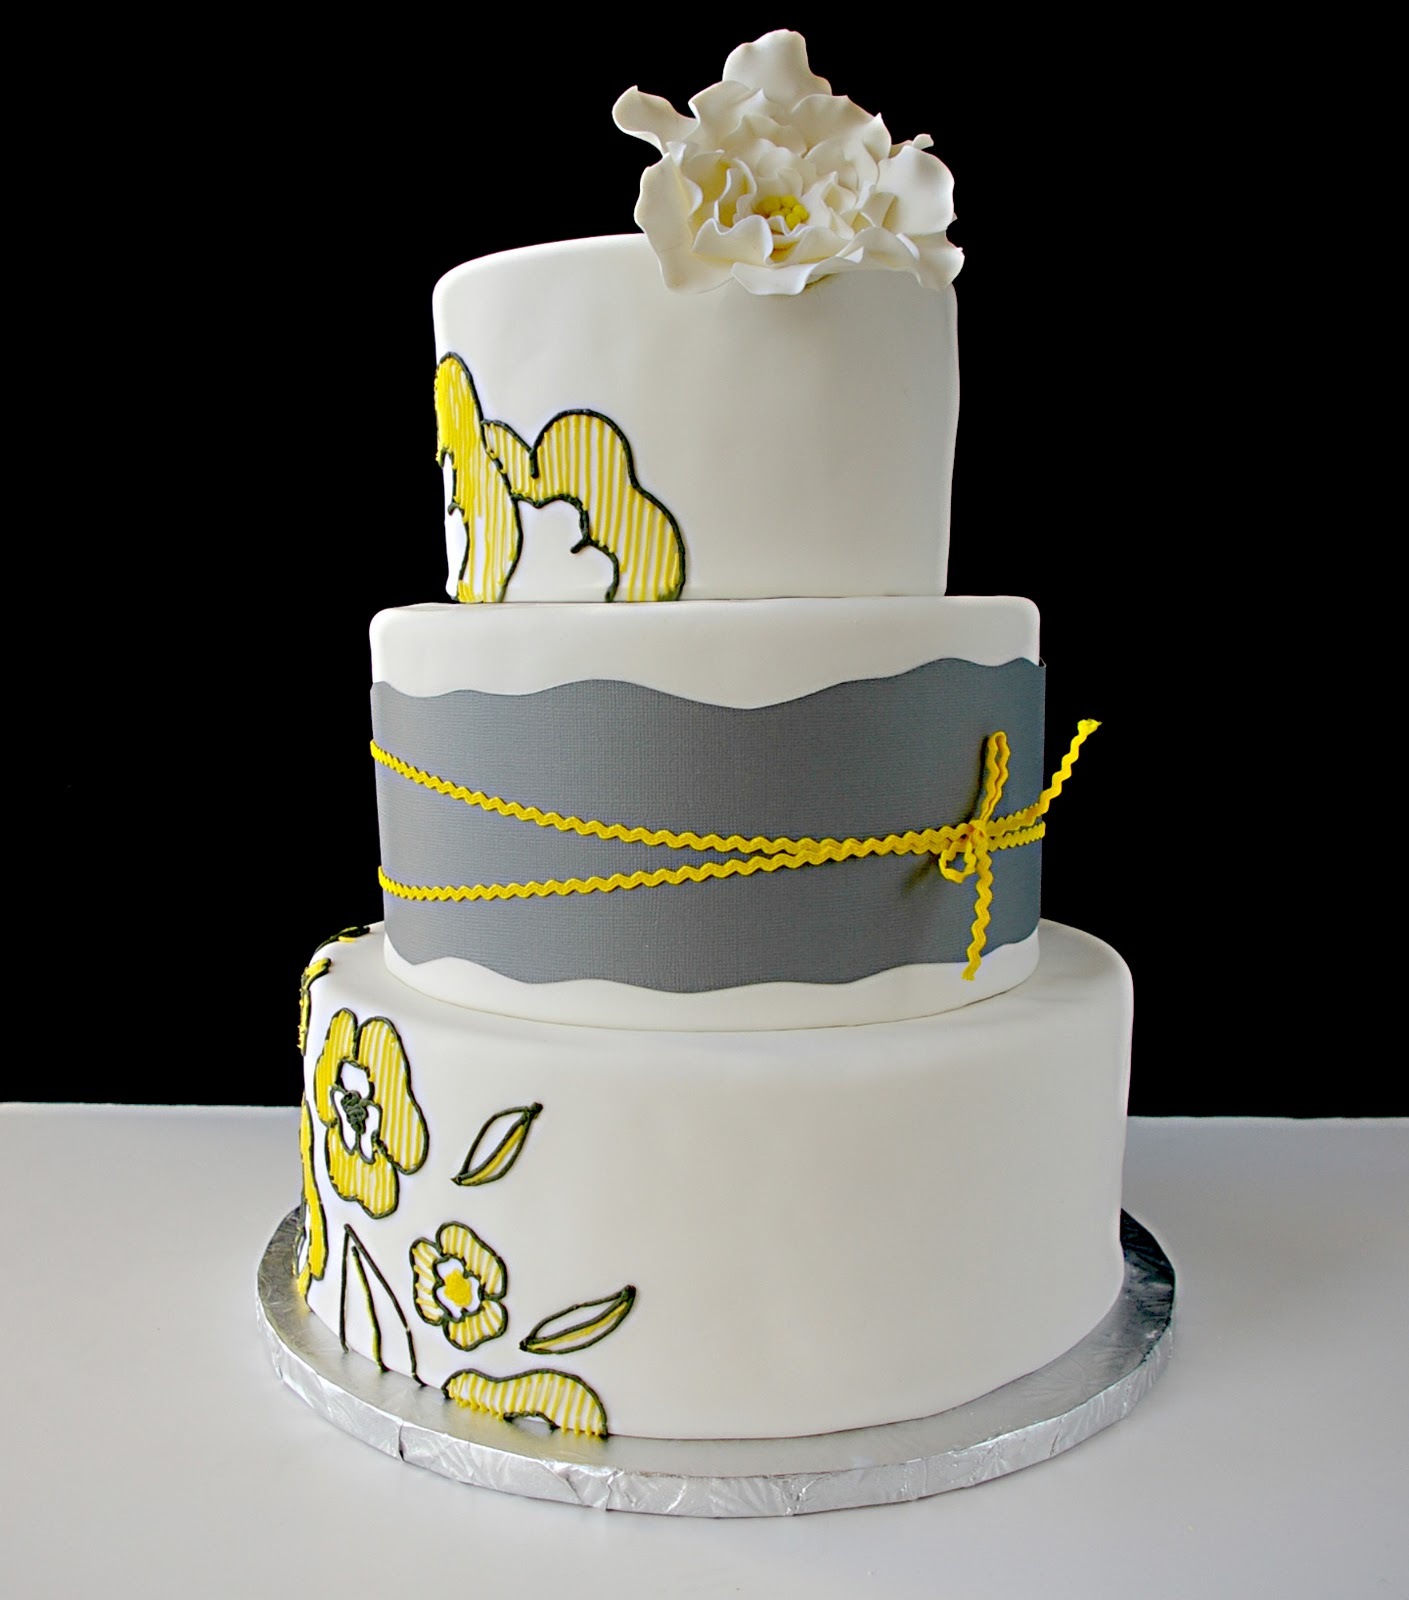 http://2.bp.blogspot.com/-rdLlECt8bwU/TxYi68BFDNI/AAAAAAAABdw/fN_nAiegn9U/s1600/Yellow%20and%20Gray%20Wedding%20Cake%20-%203.jpg